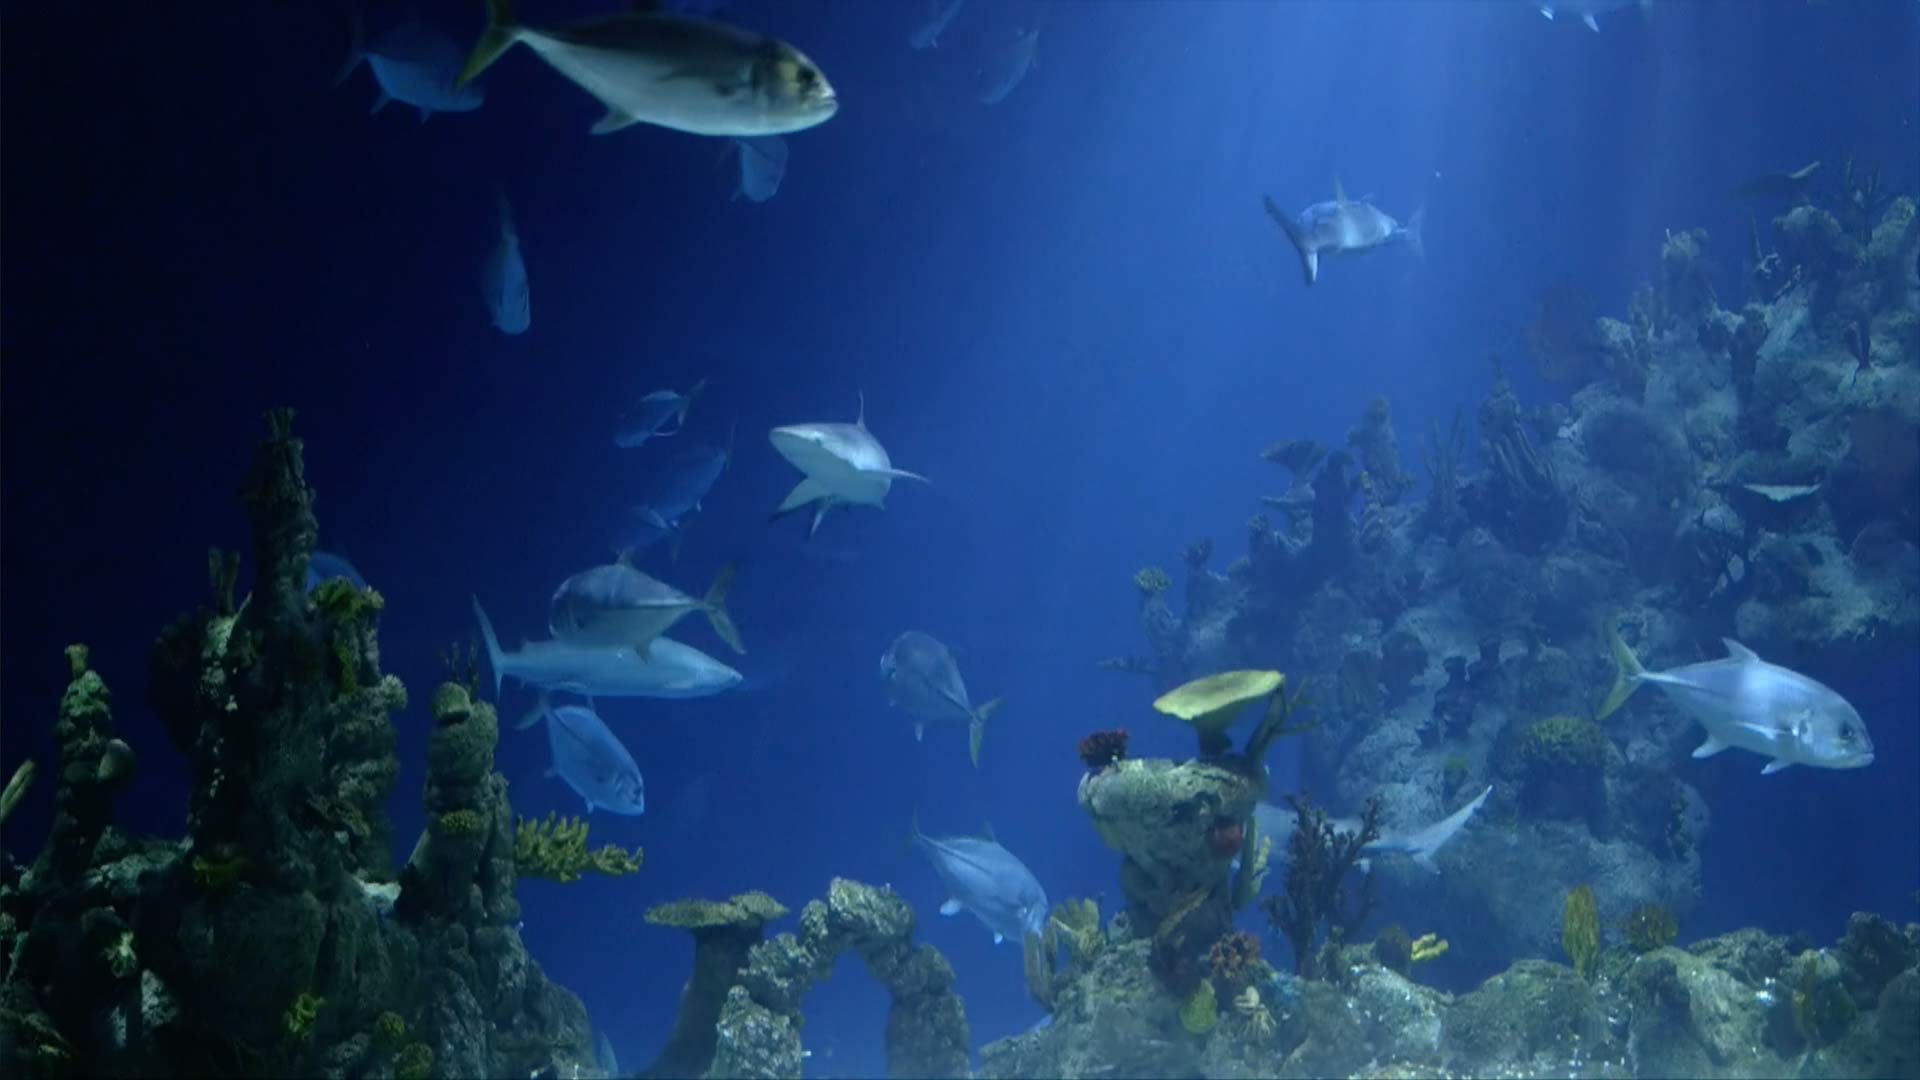 e of the UK s biggest and best aquariums